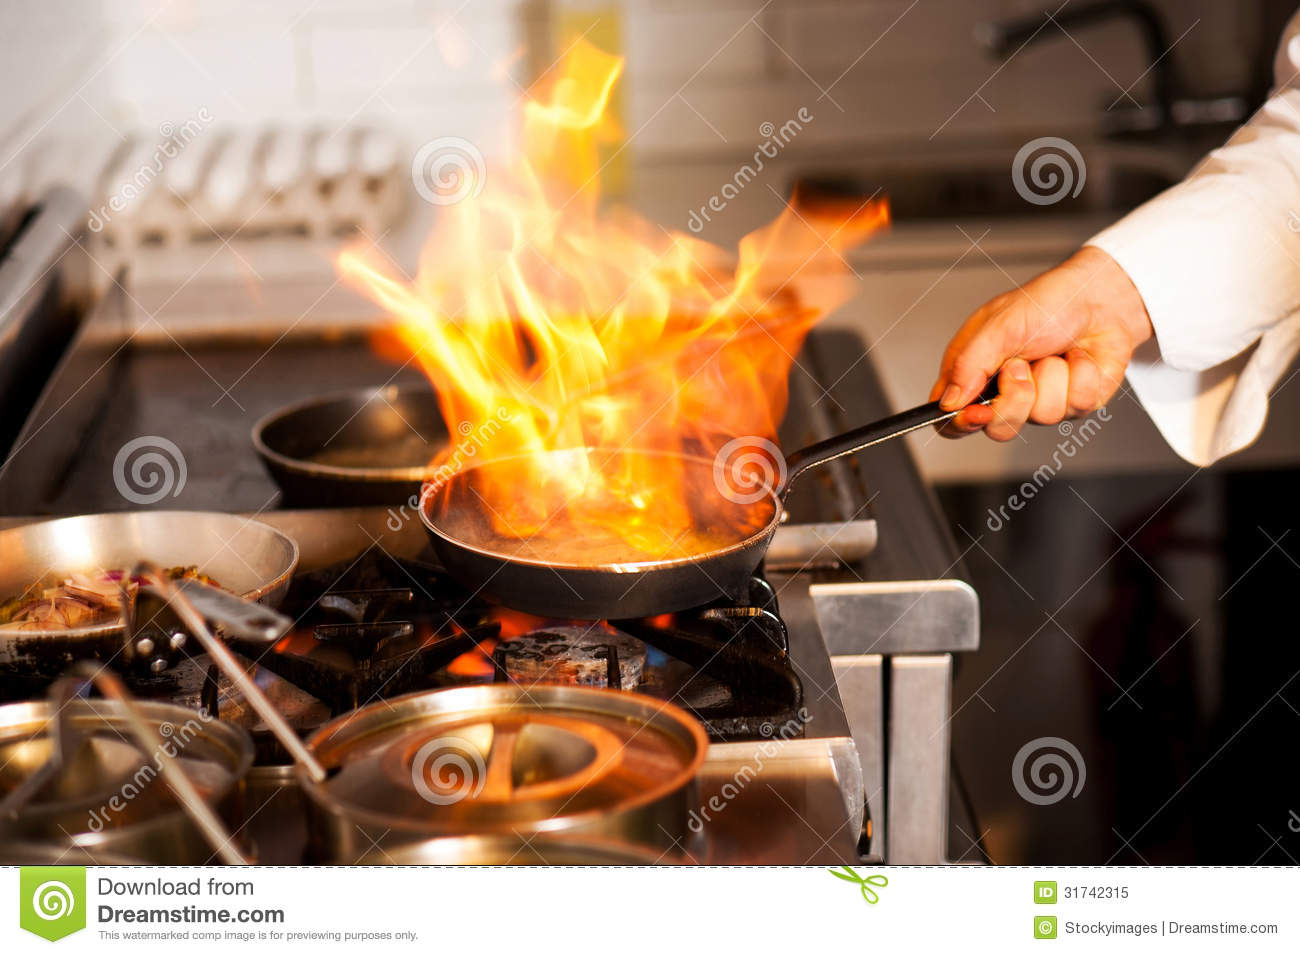 chef-cooking-kitchen-stove-flame-frying-pan-31742315.jpg